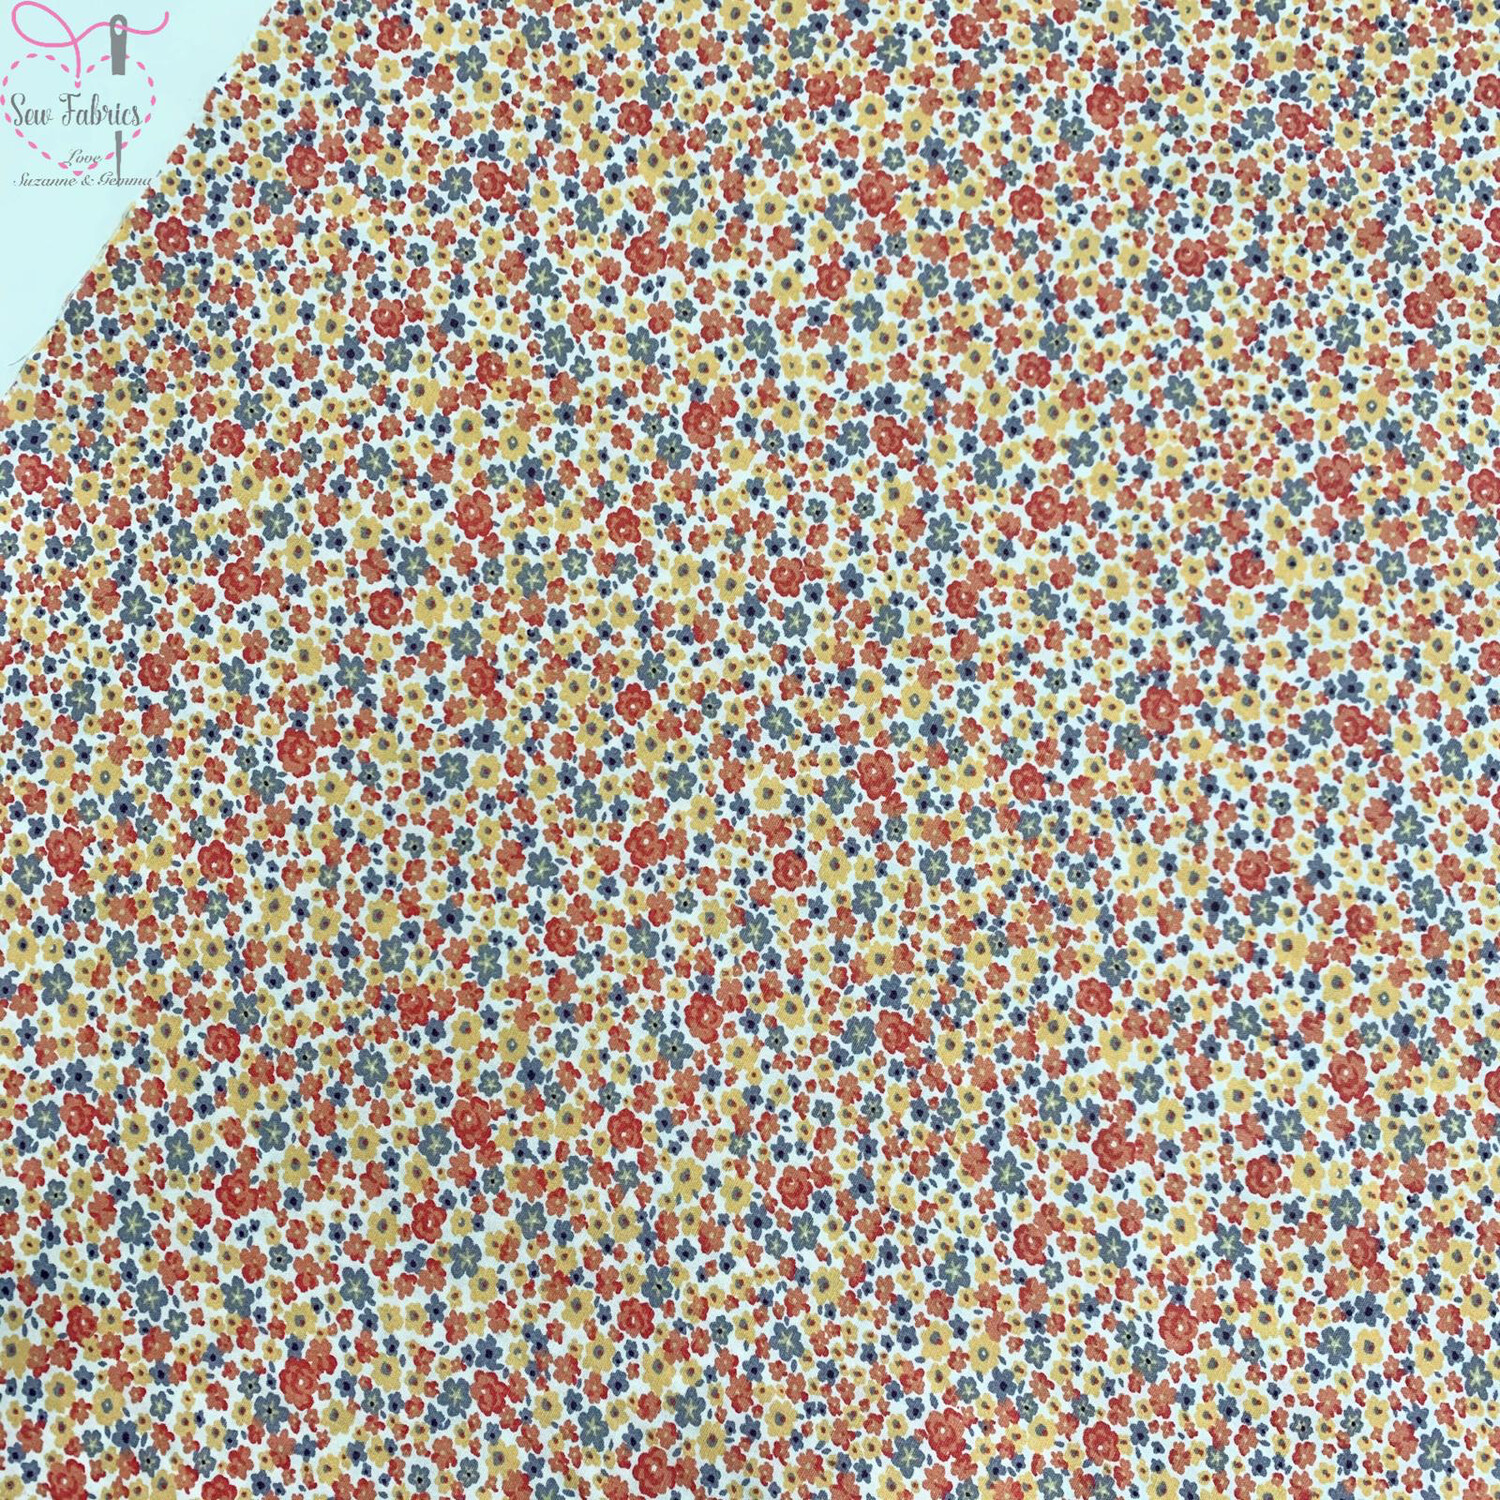 Rose and Hubble Gold Flowers Floral Fabric 100% Cotton Poplin Flower Orange Material Sewing